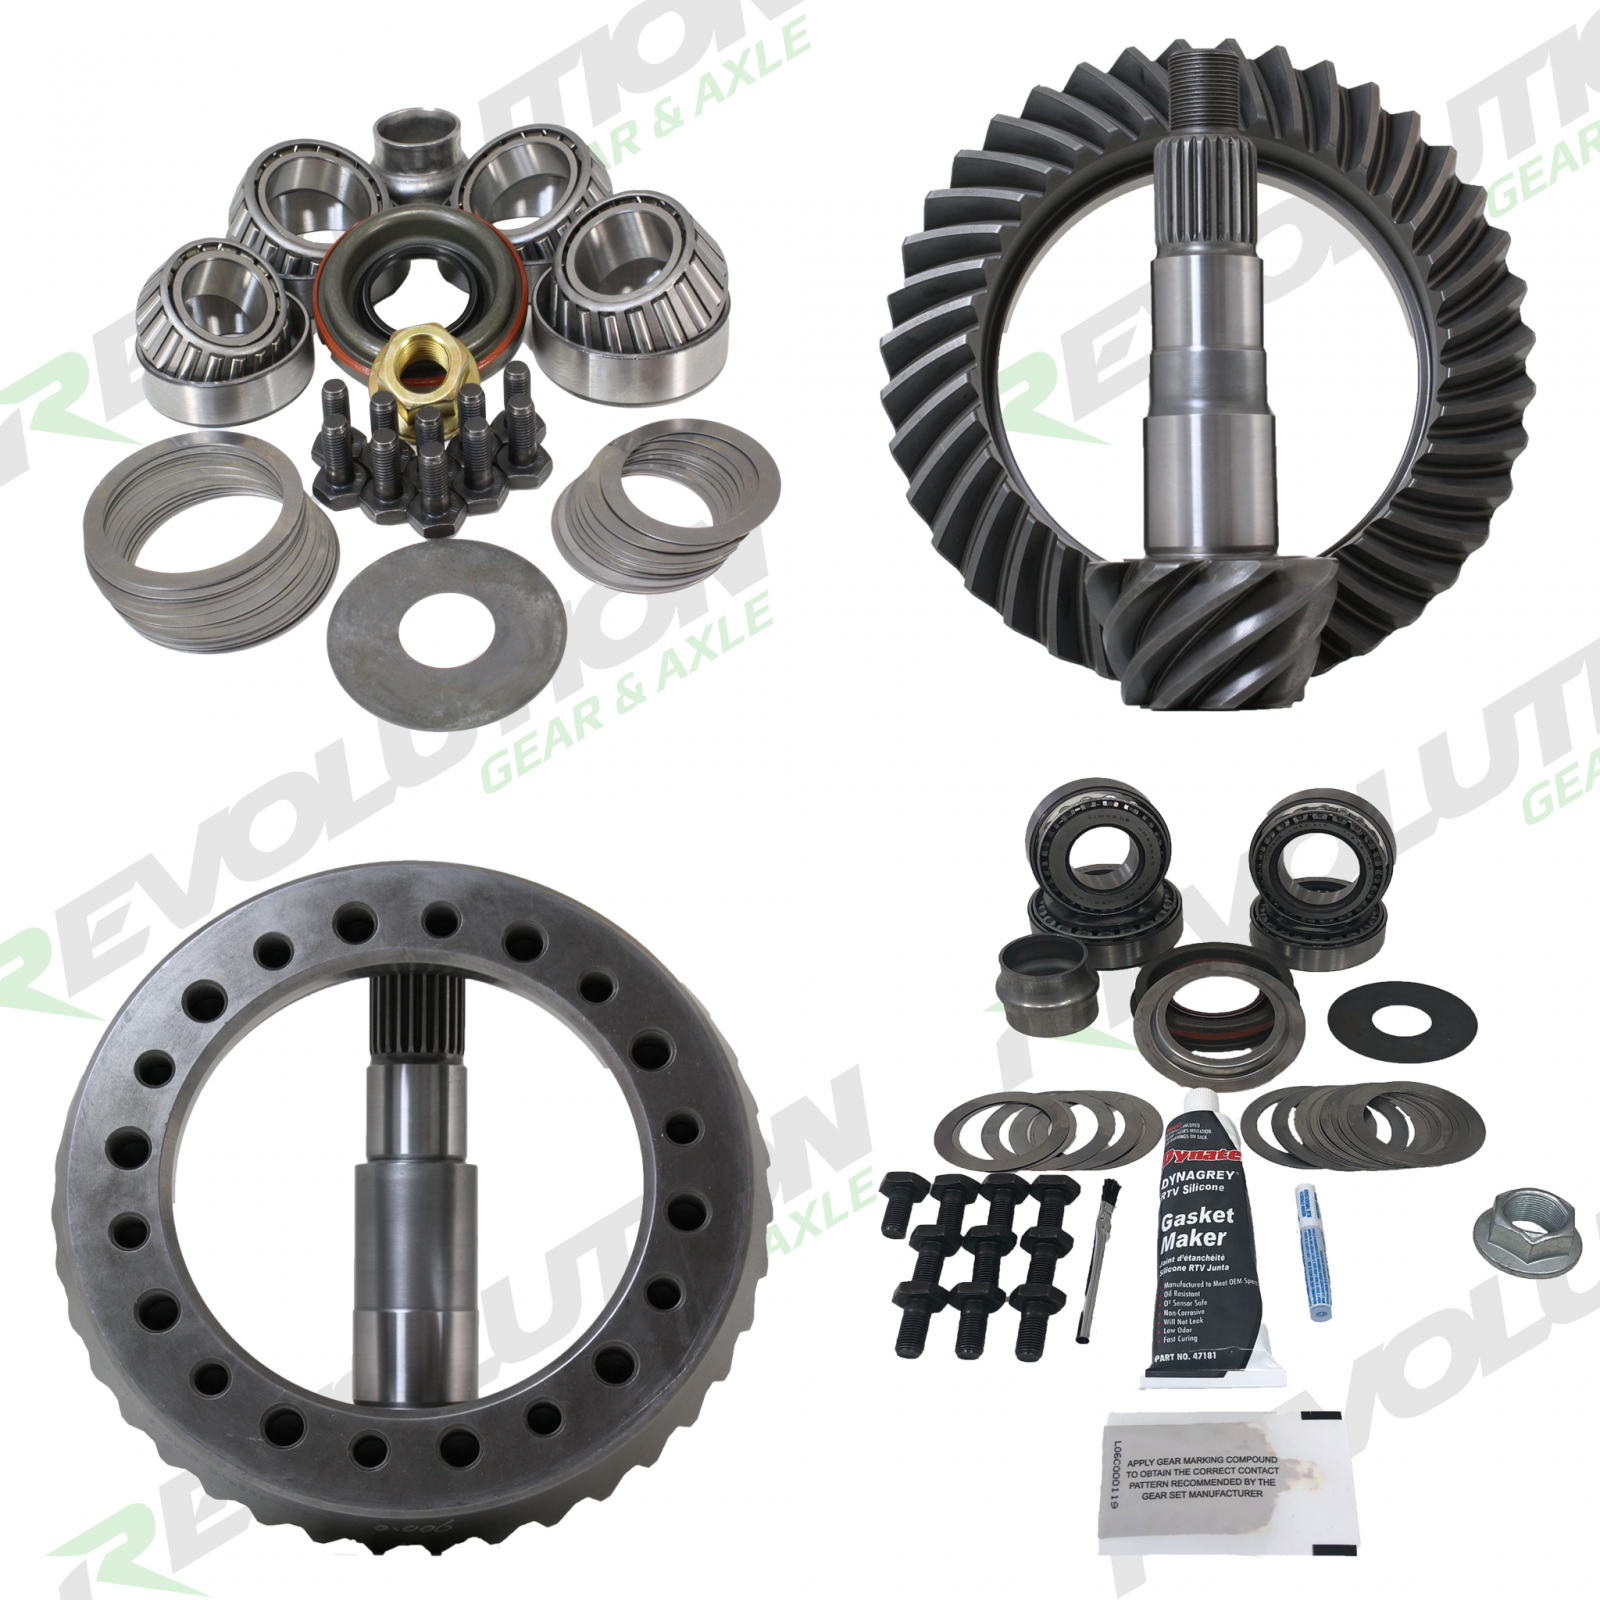 5.13 Ratio Gear Package (GM 10.5 14-Bolt Thick 89-98 - D60 Std Rotation) with Koyo Master Kits Revolution Gear and Axle - HQ Offroad